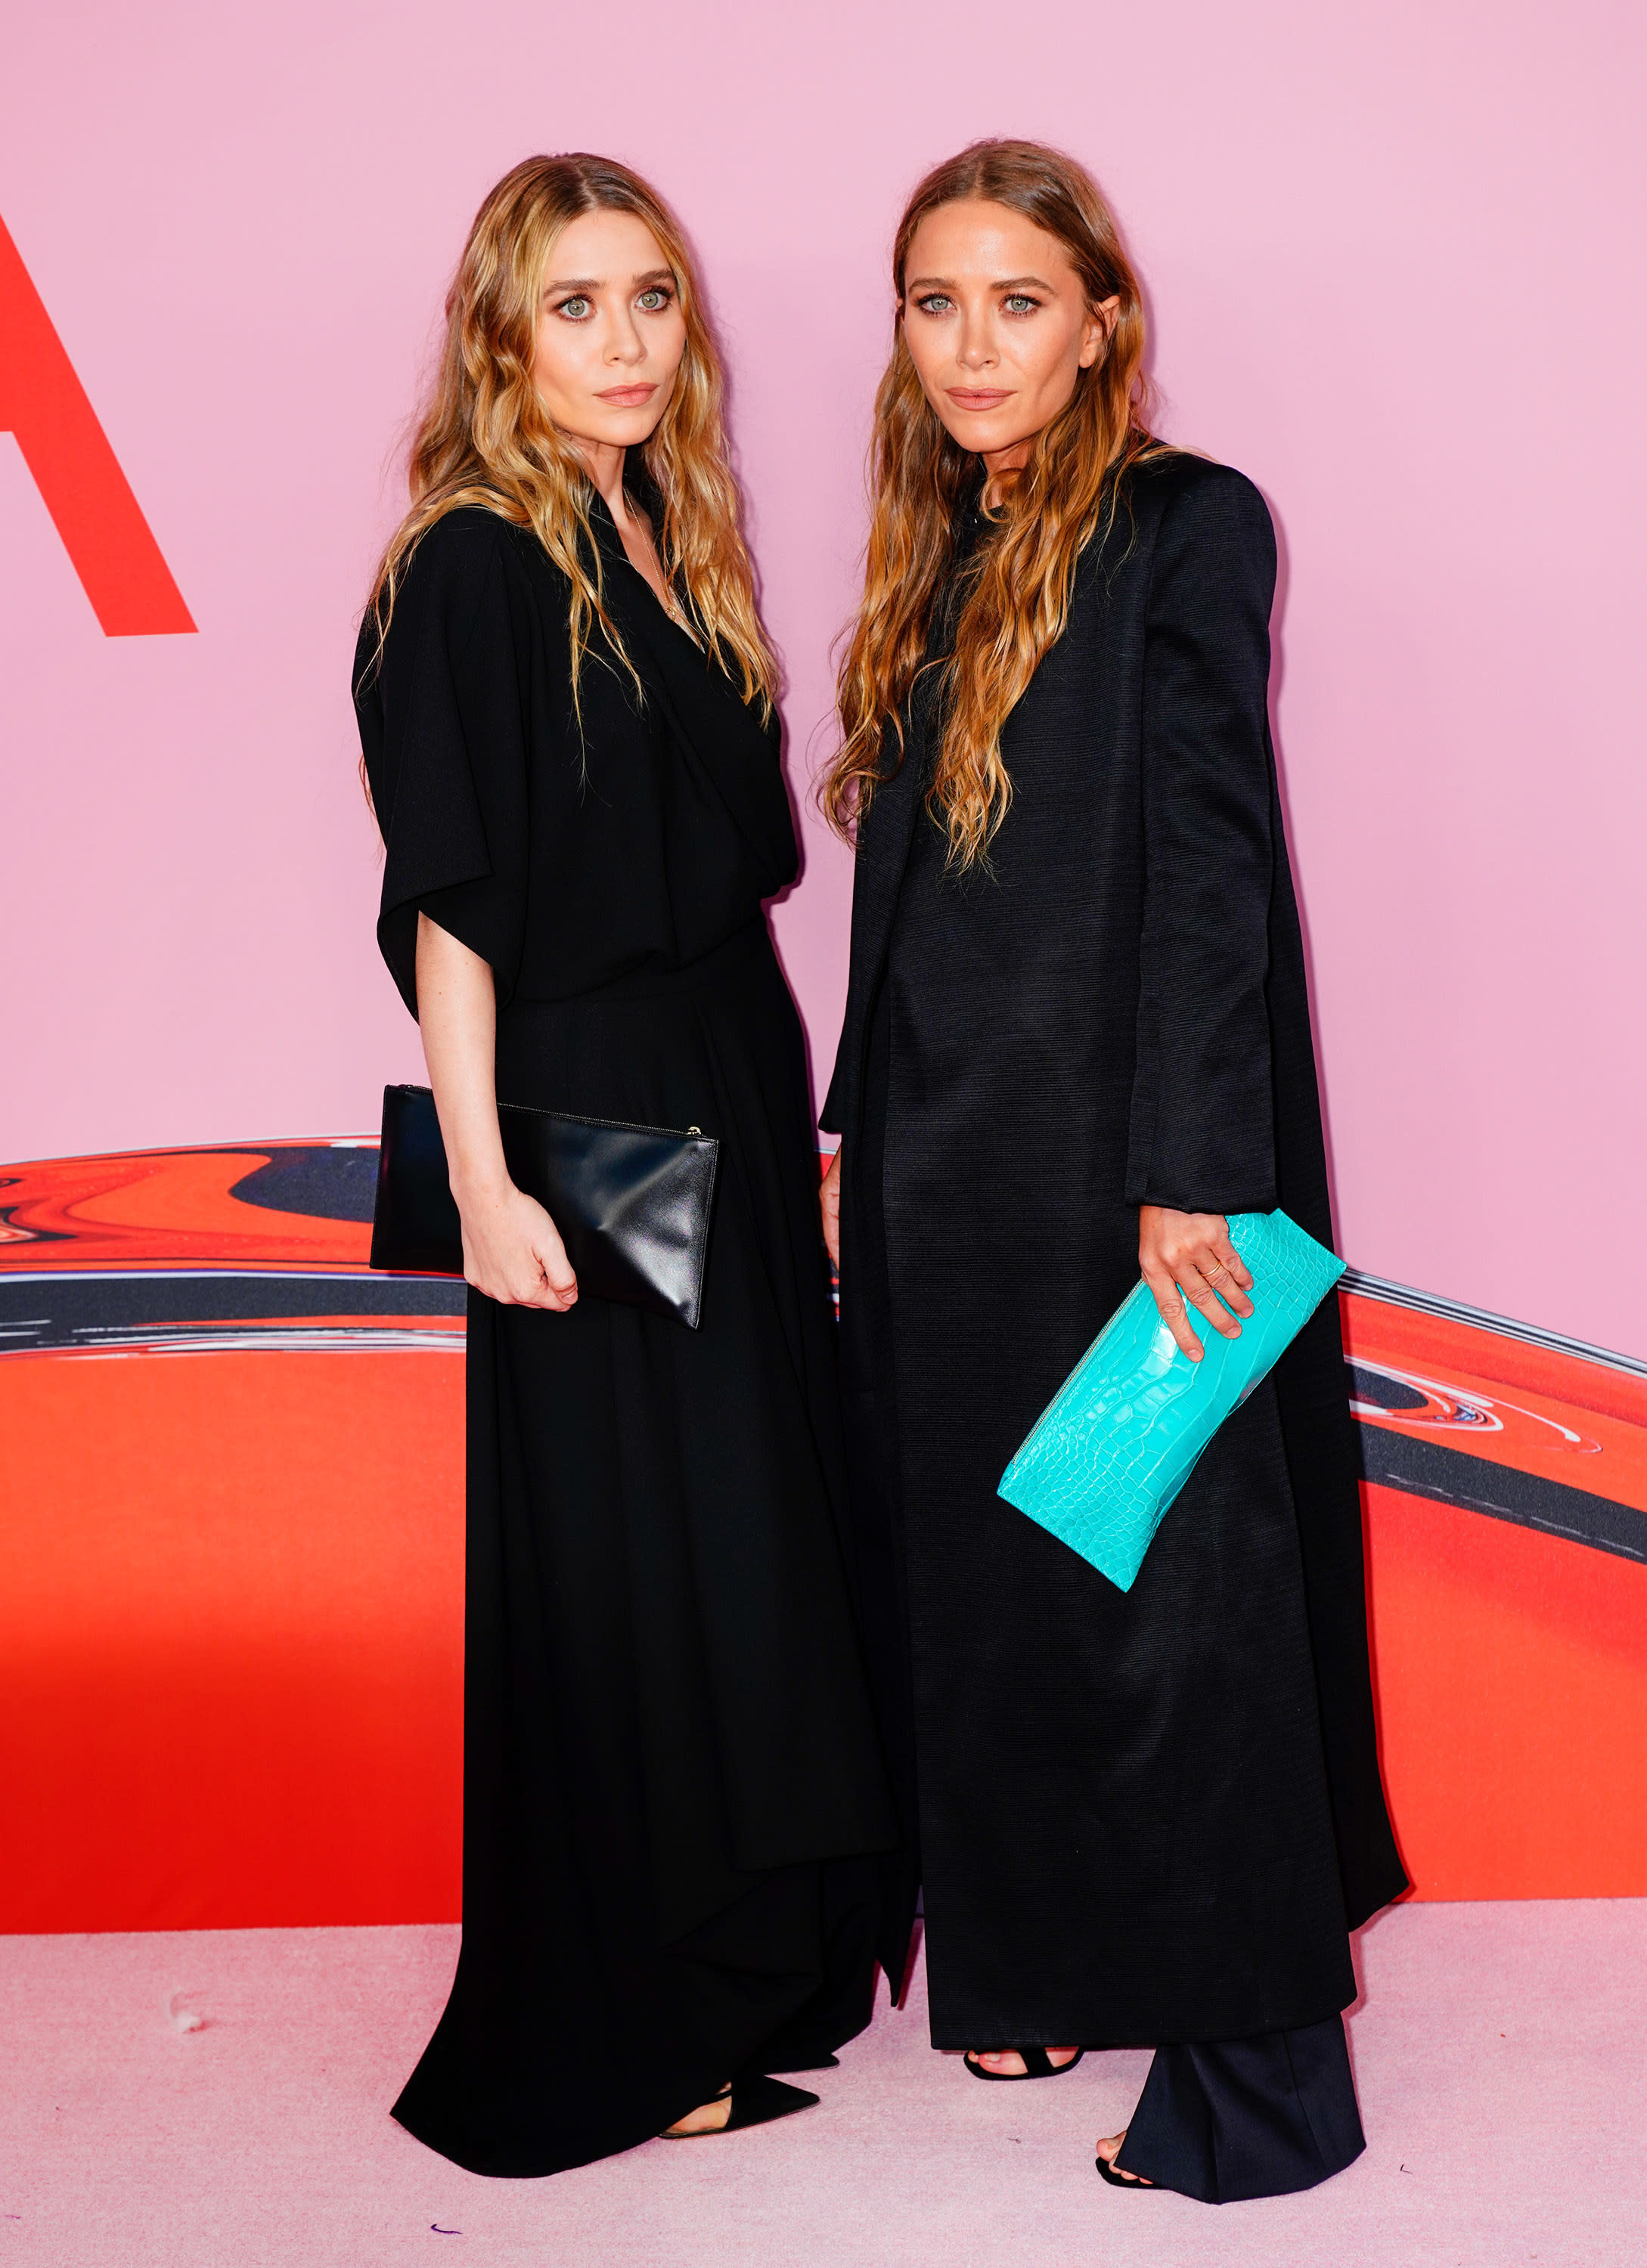 Mary-Kate and Ashley both wear billowy, long, dark colored dresses with sandals. Mary-Kate holds a bright colored snakeskin clutch while Ashley holds a black one.